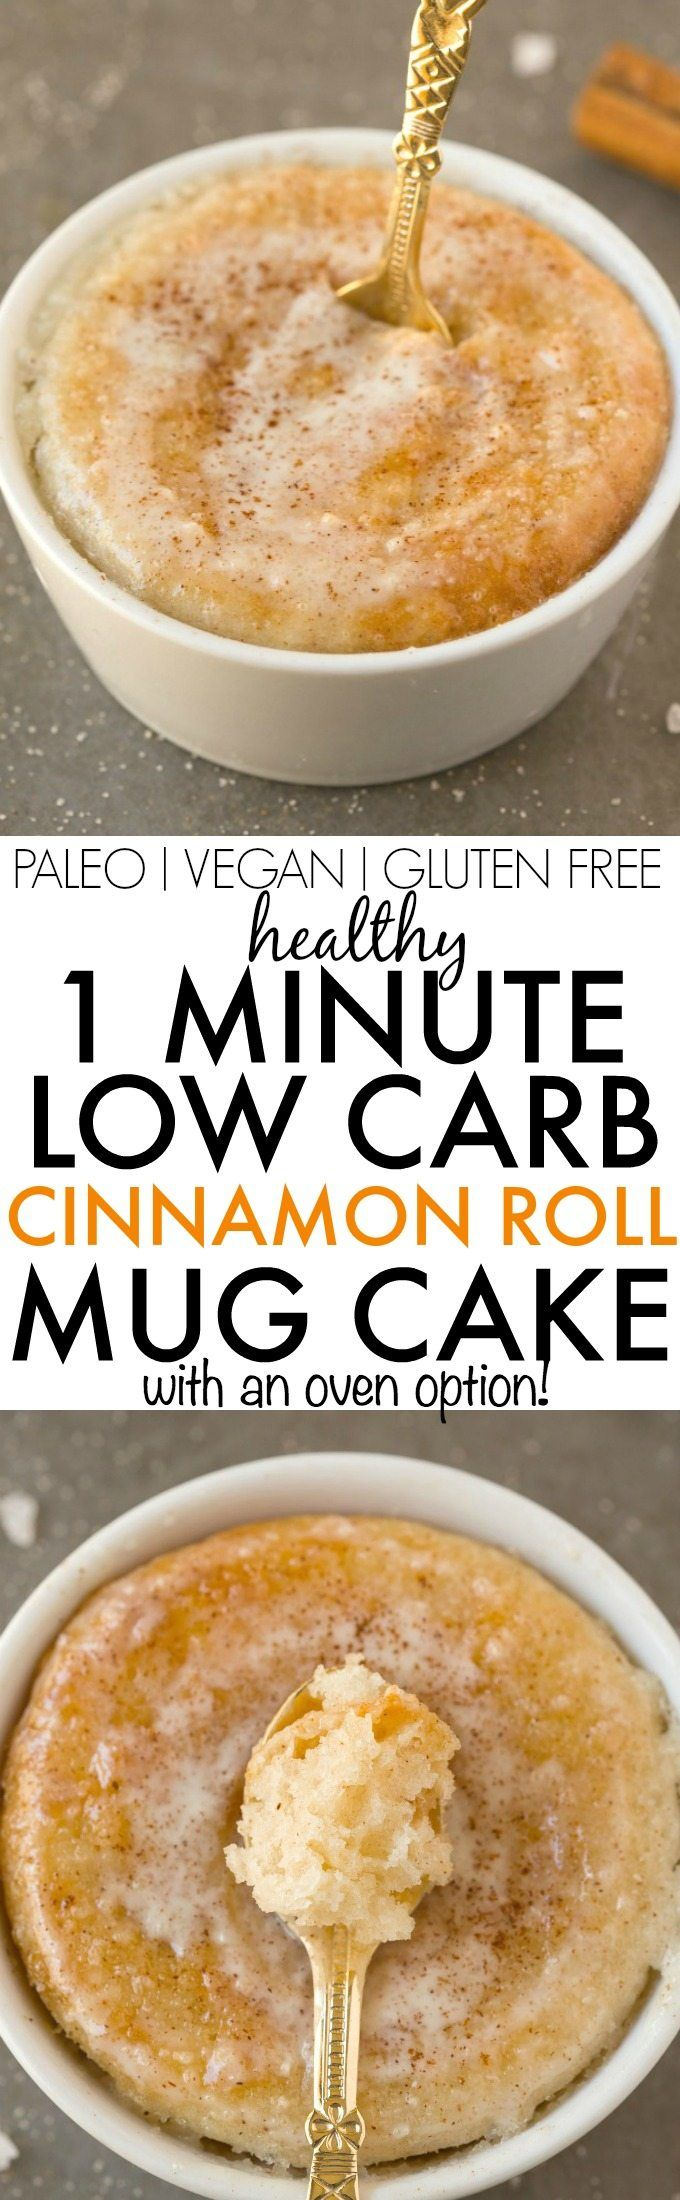 Healthy 1 Minute LOW CARB Cinnamon Roll Mug Cake- Light, fluffy and moist in the inside! Single servinf and packed full of protein and NO sugar whatsoever-Even the creamy glaze! {vegan, gluten free, paleo recipe}- thebigmansworld.com                                                                                                                                                                                 More